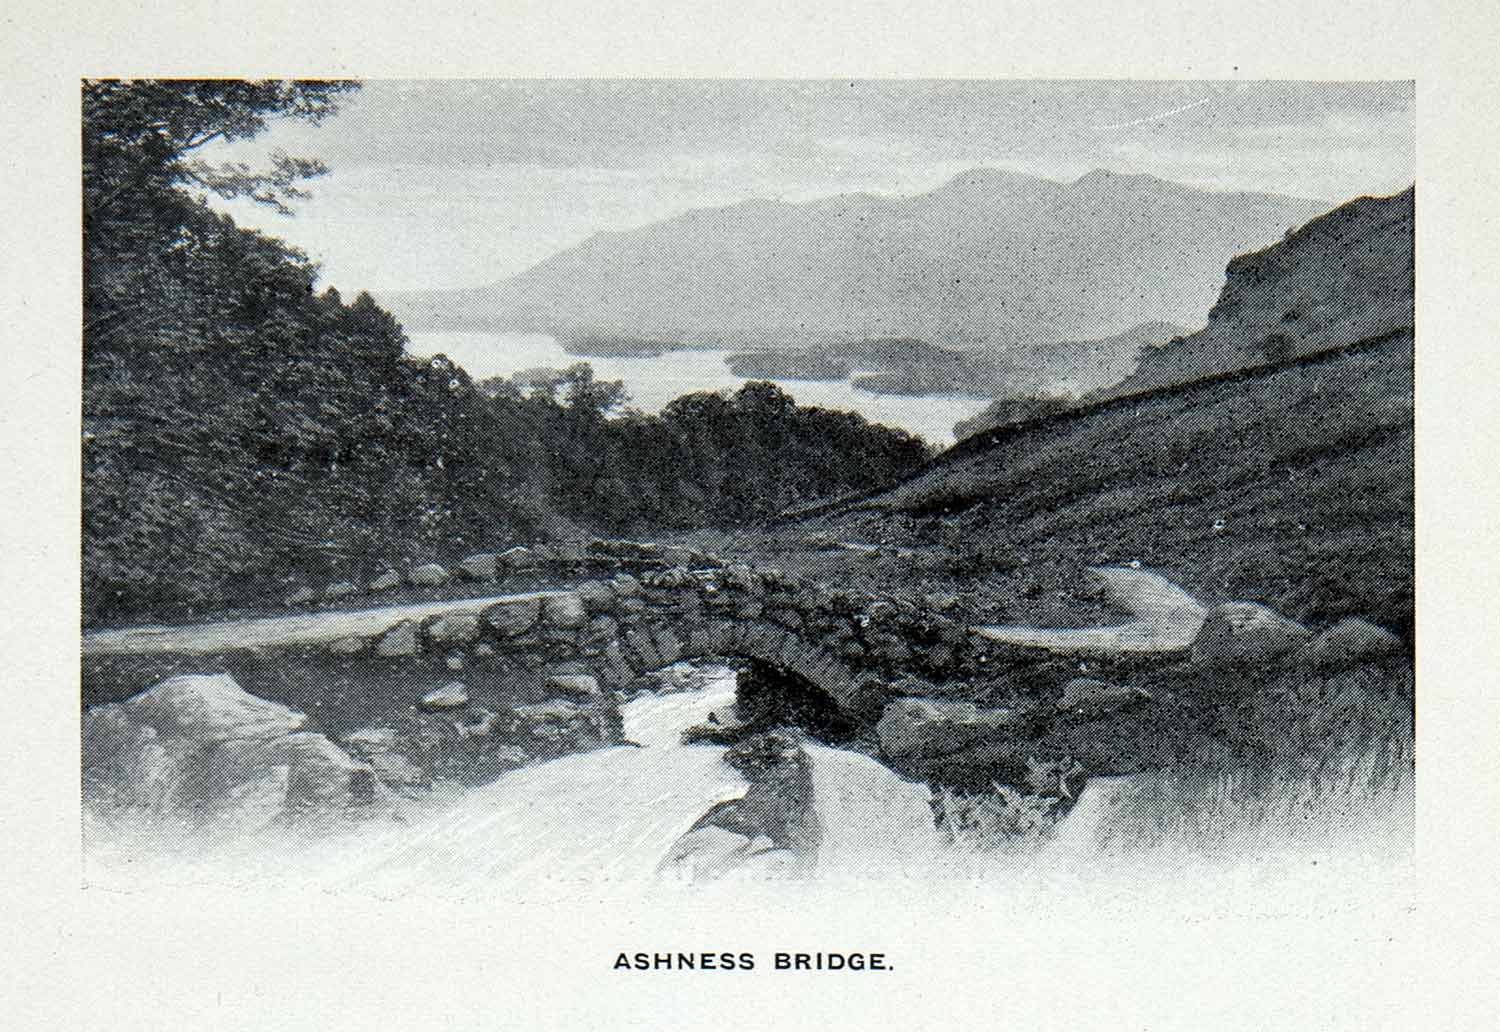 1912 Print Stone Ashness Bridge Cumbria Landscape English Lake District XGCA7